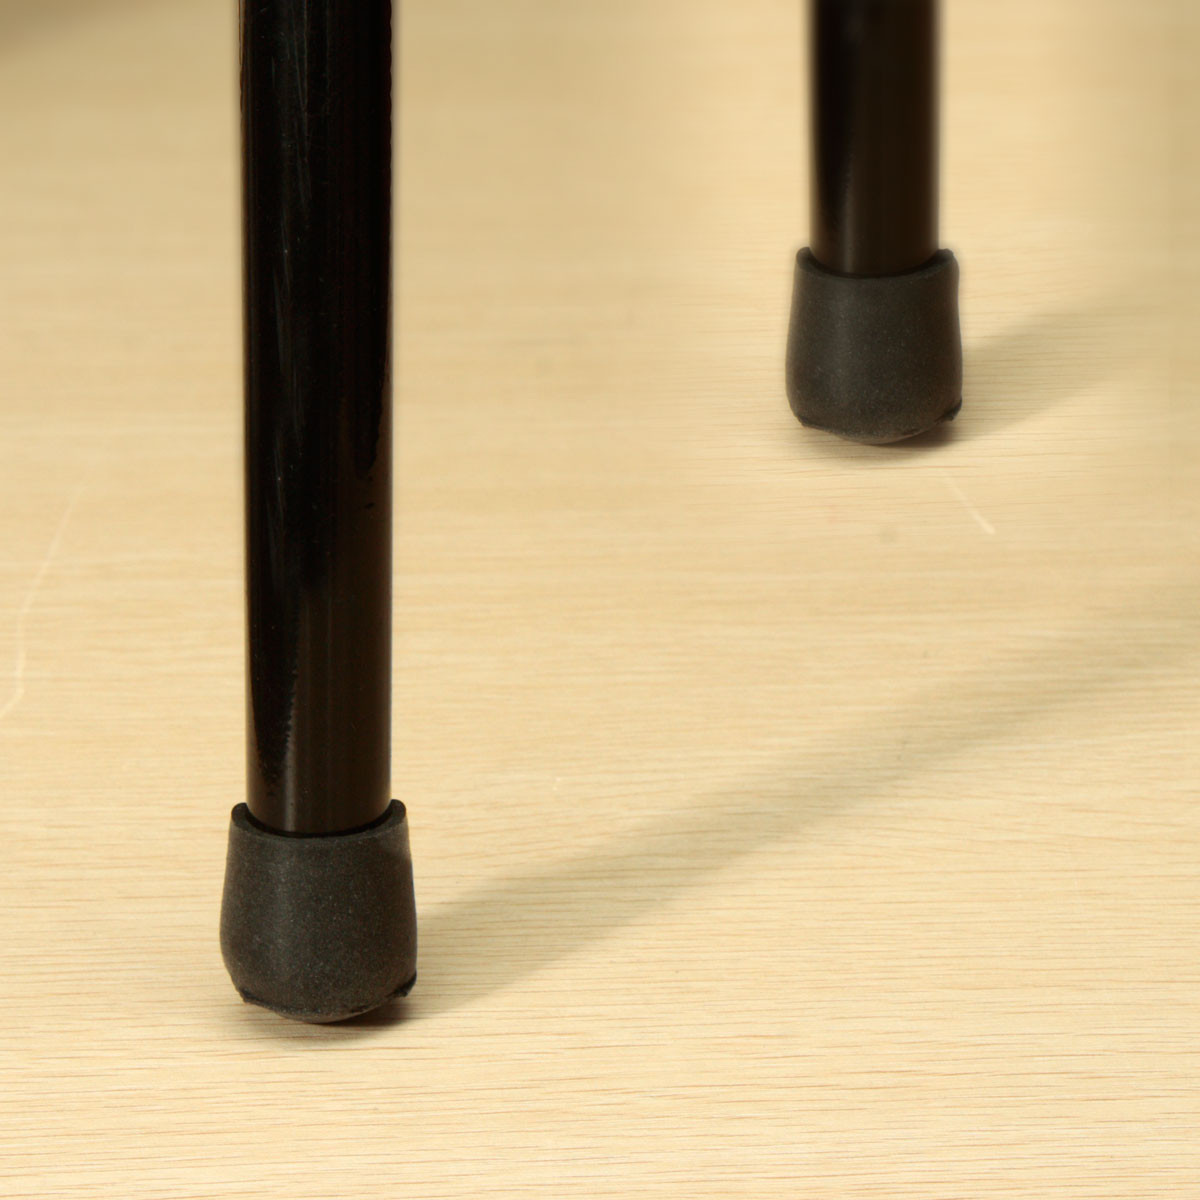 Chair Table Legs Cover Black Rubber Cap Floor Protector Anti Scratch 16/19/22/25mm